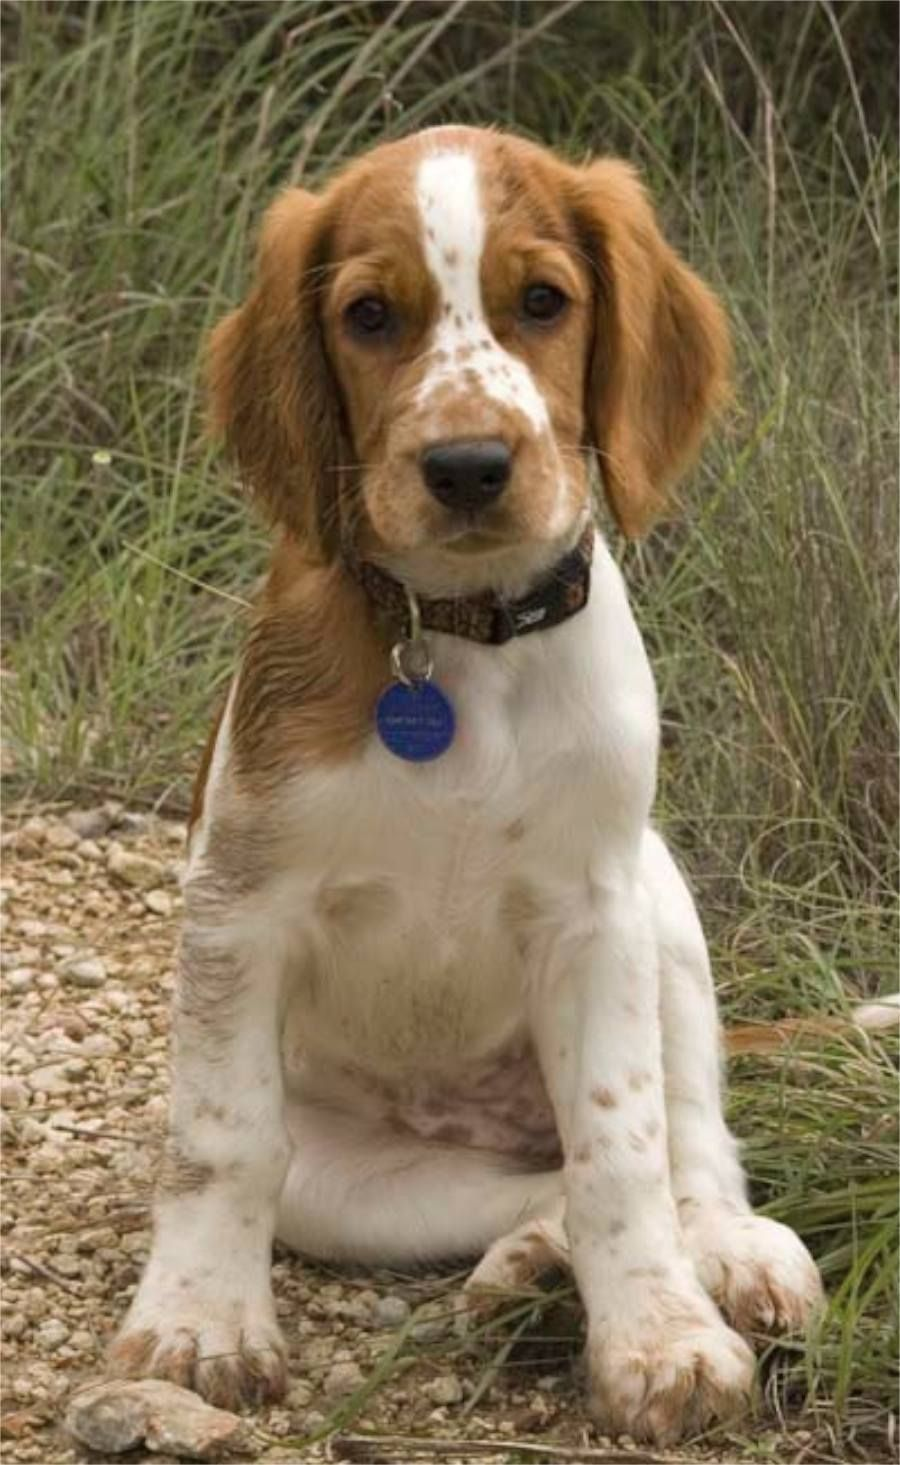 Welsh Springer Spaniel One Word For This Photo A Dor A Ble